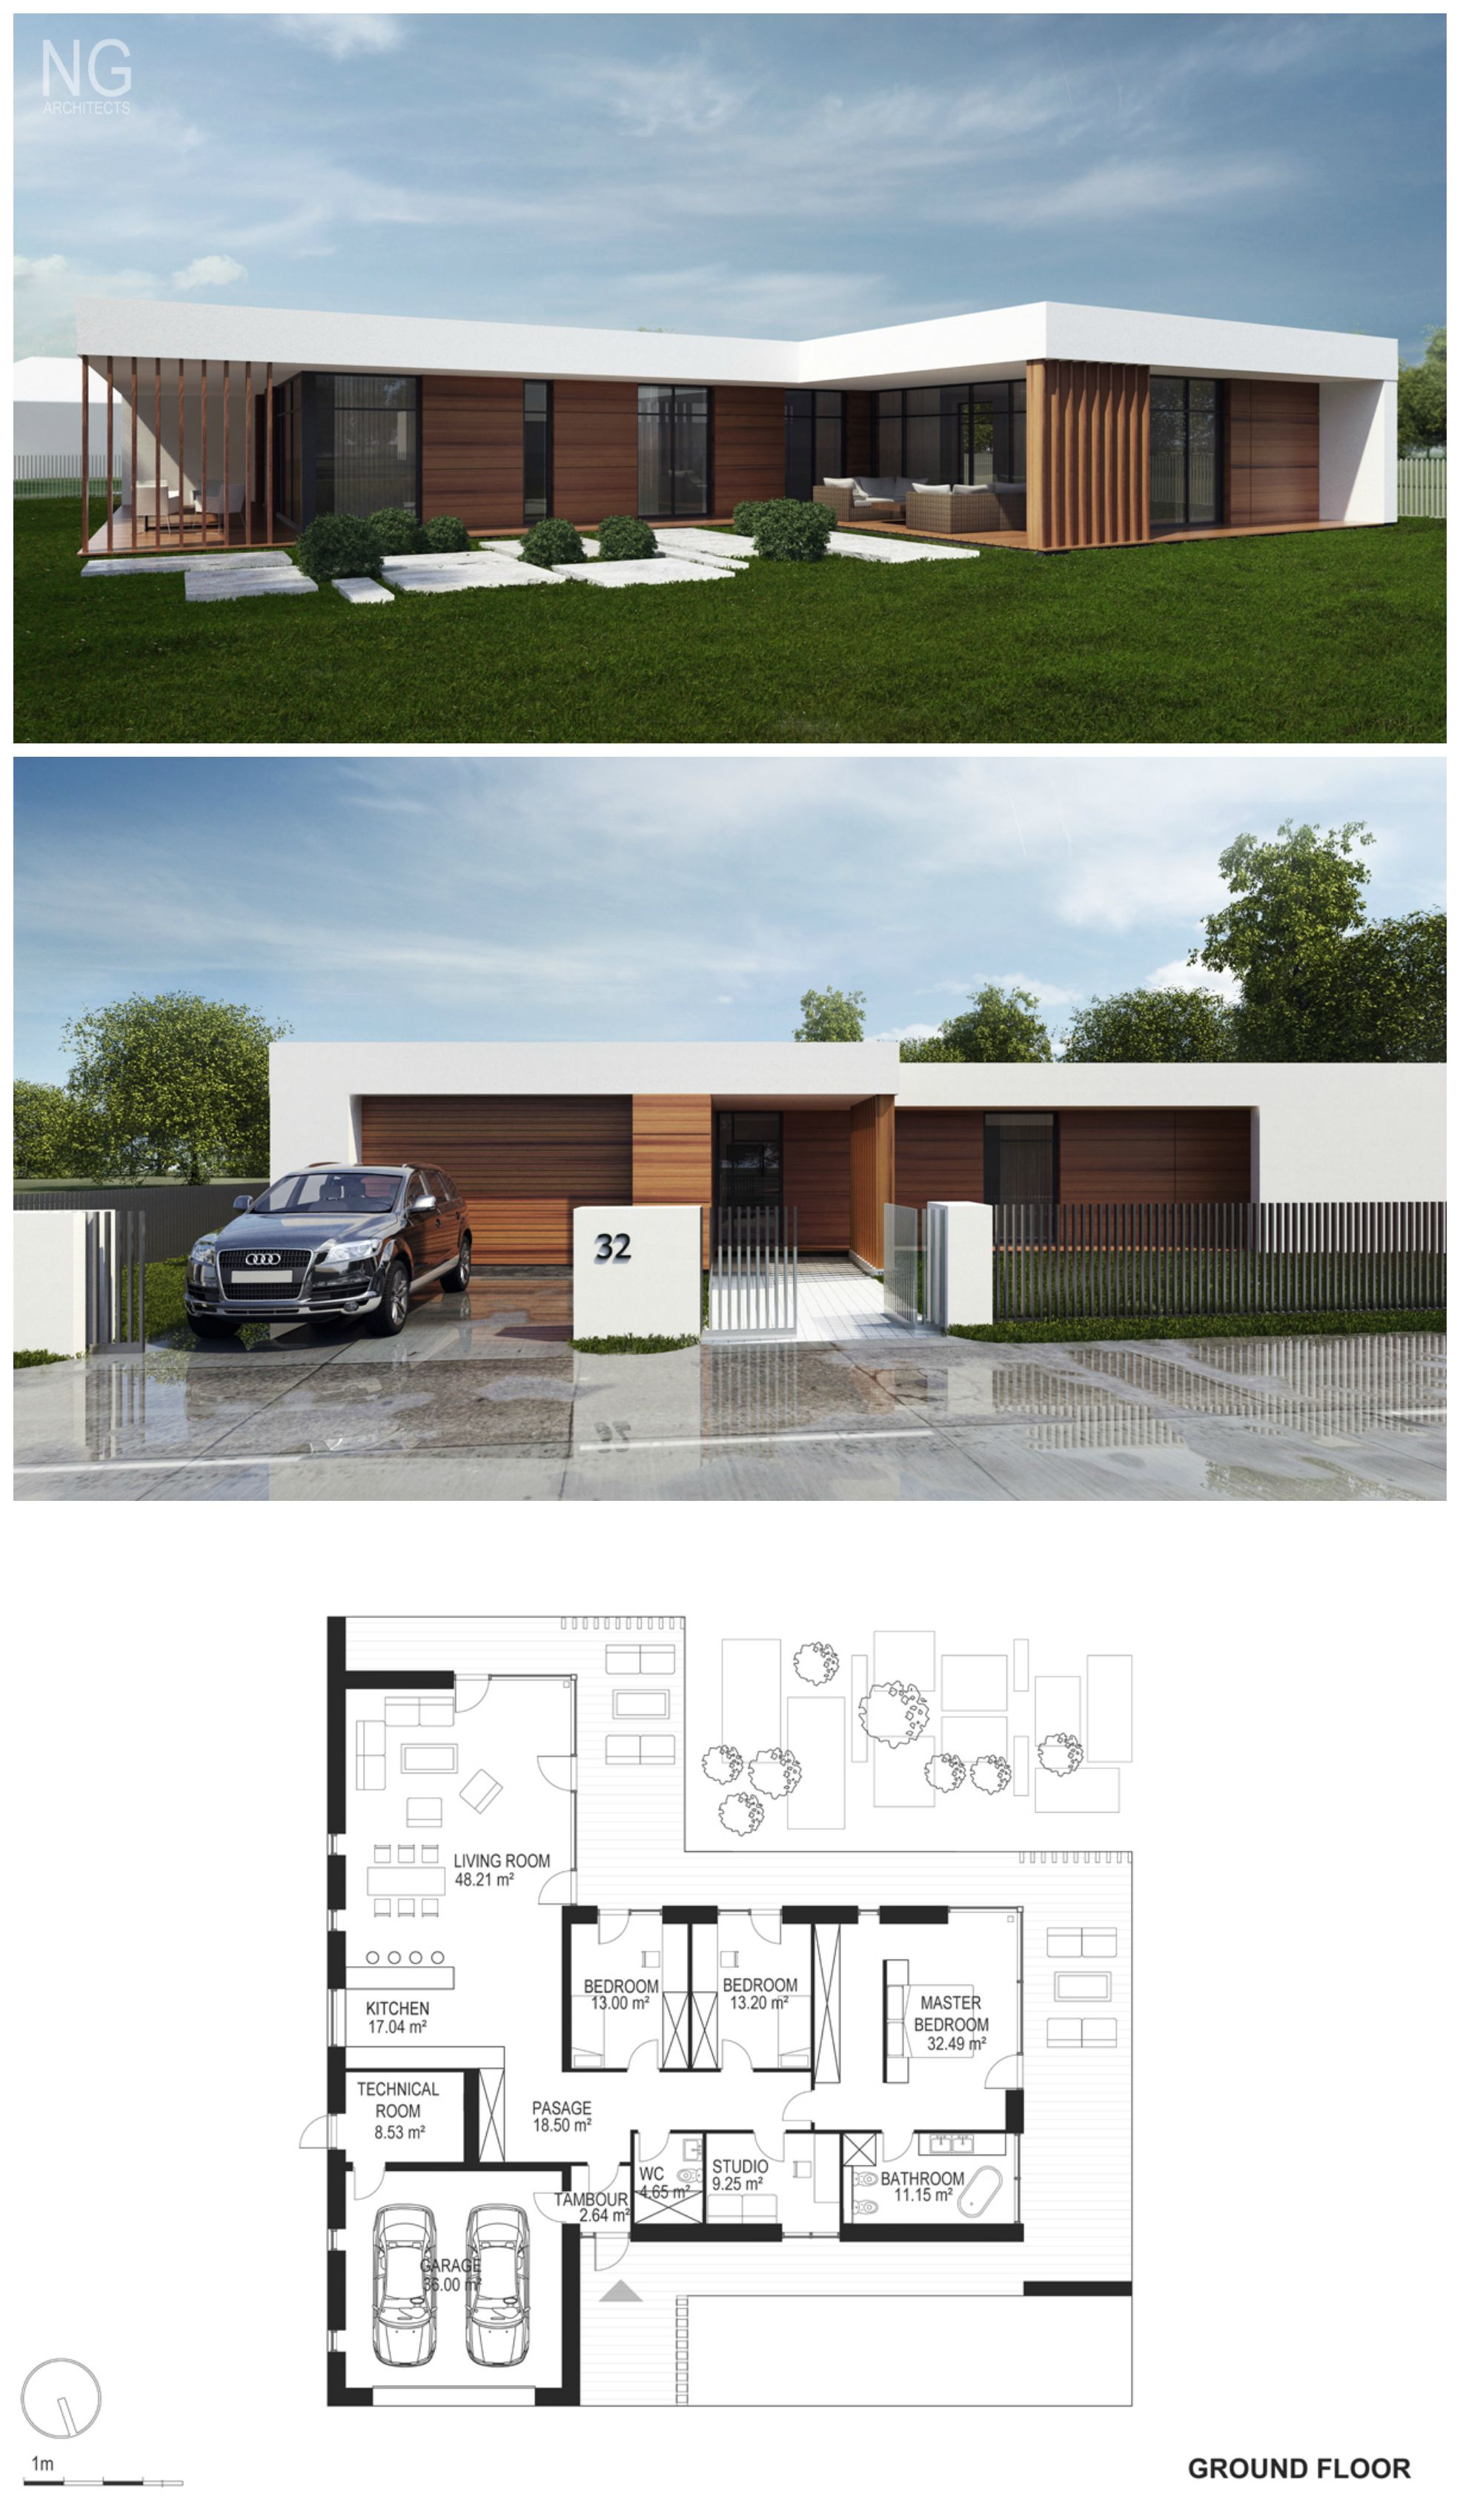 Pyramid House Plans Modern 240 M2 House Designed By Ng Architects Modern